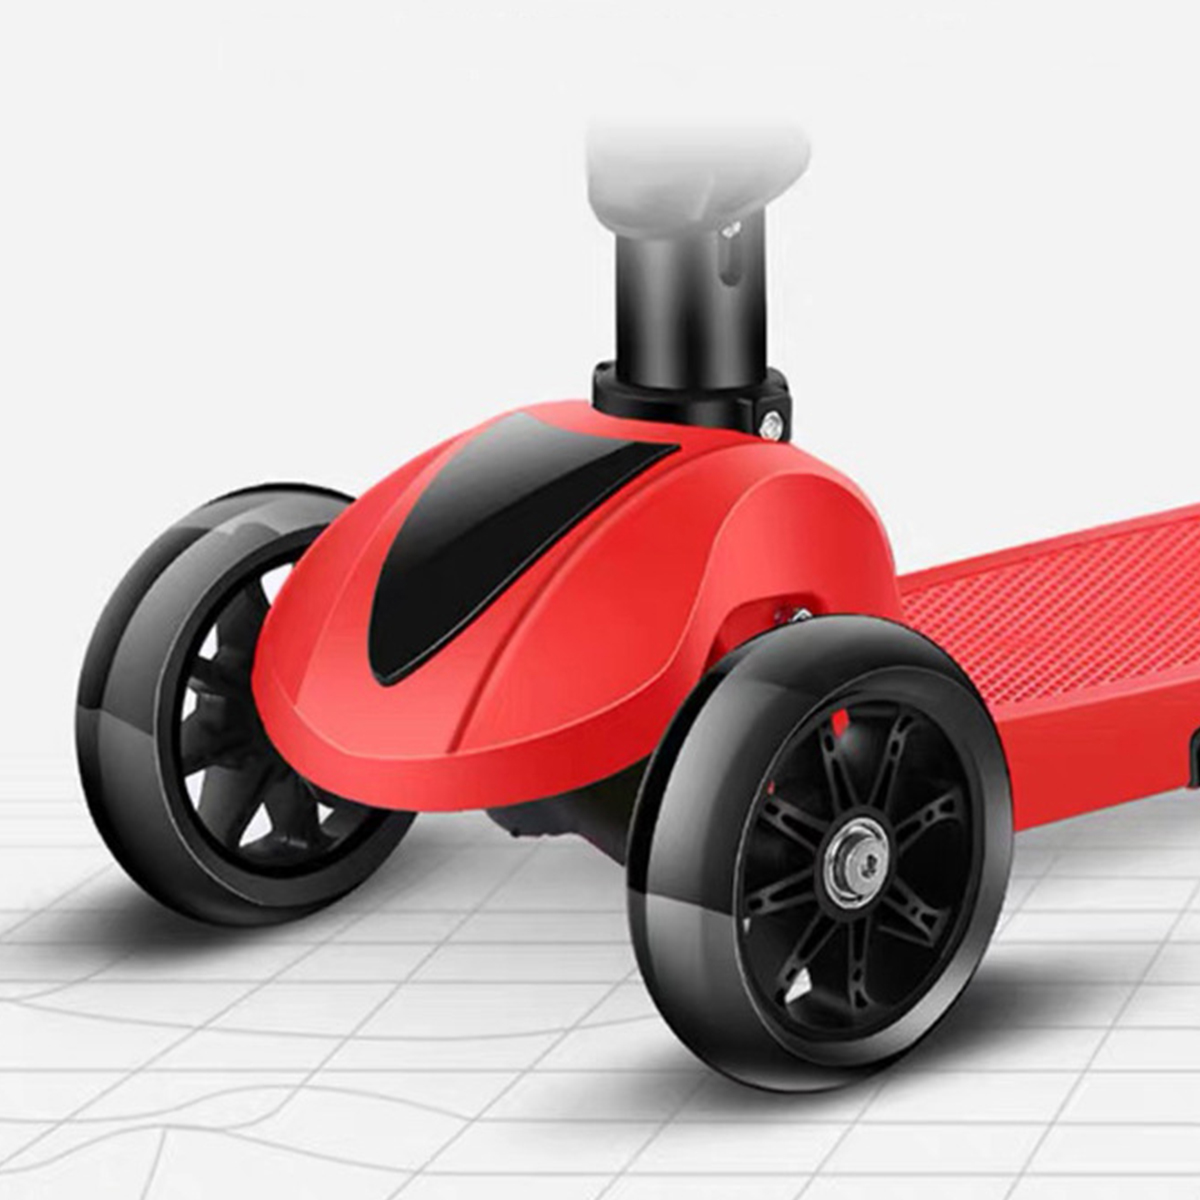 Details about  /Kids 4-in-1 Scooter with Removable Seat LED Wheel Flashing 3 Wheels for E t g 02